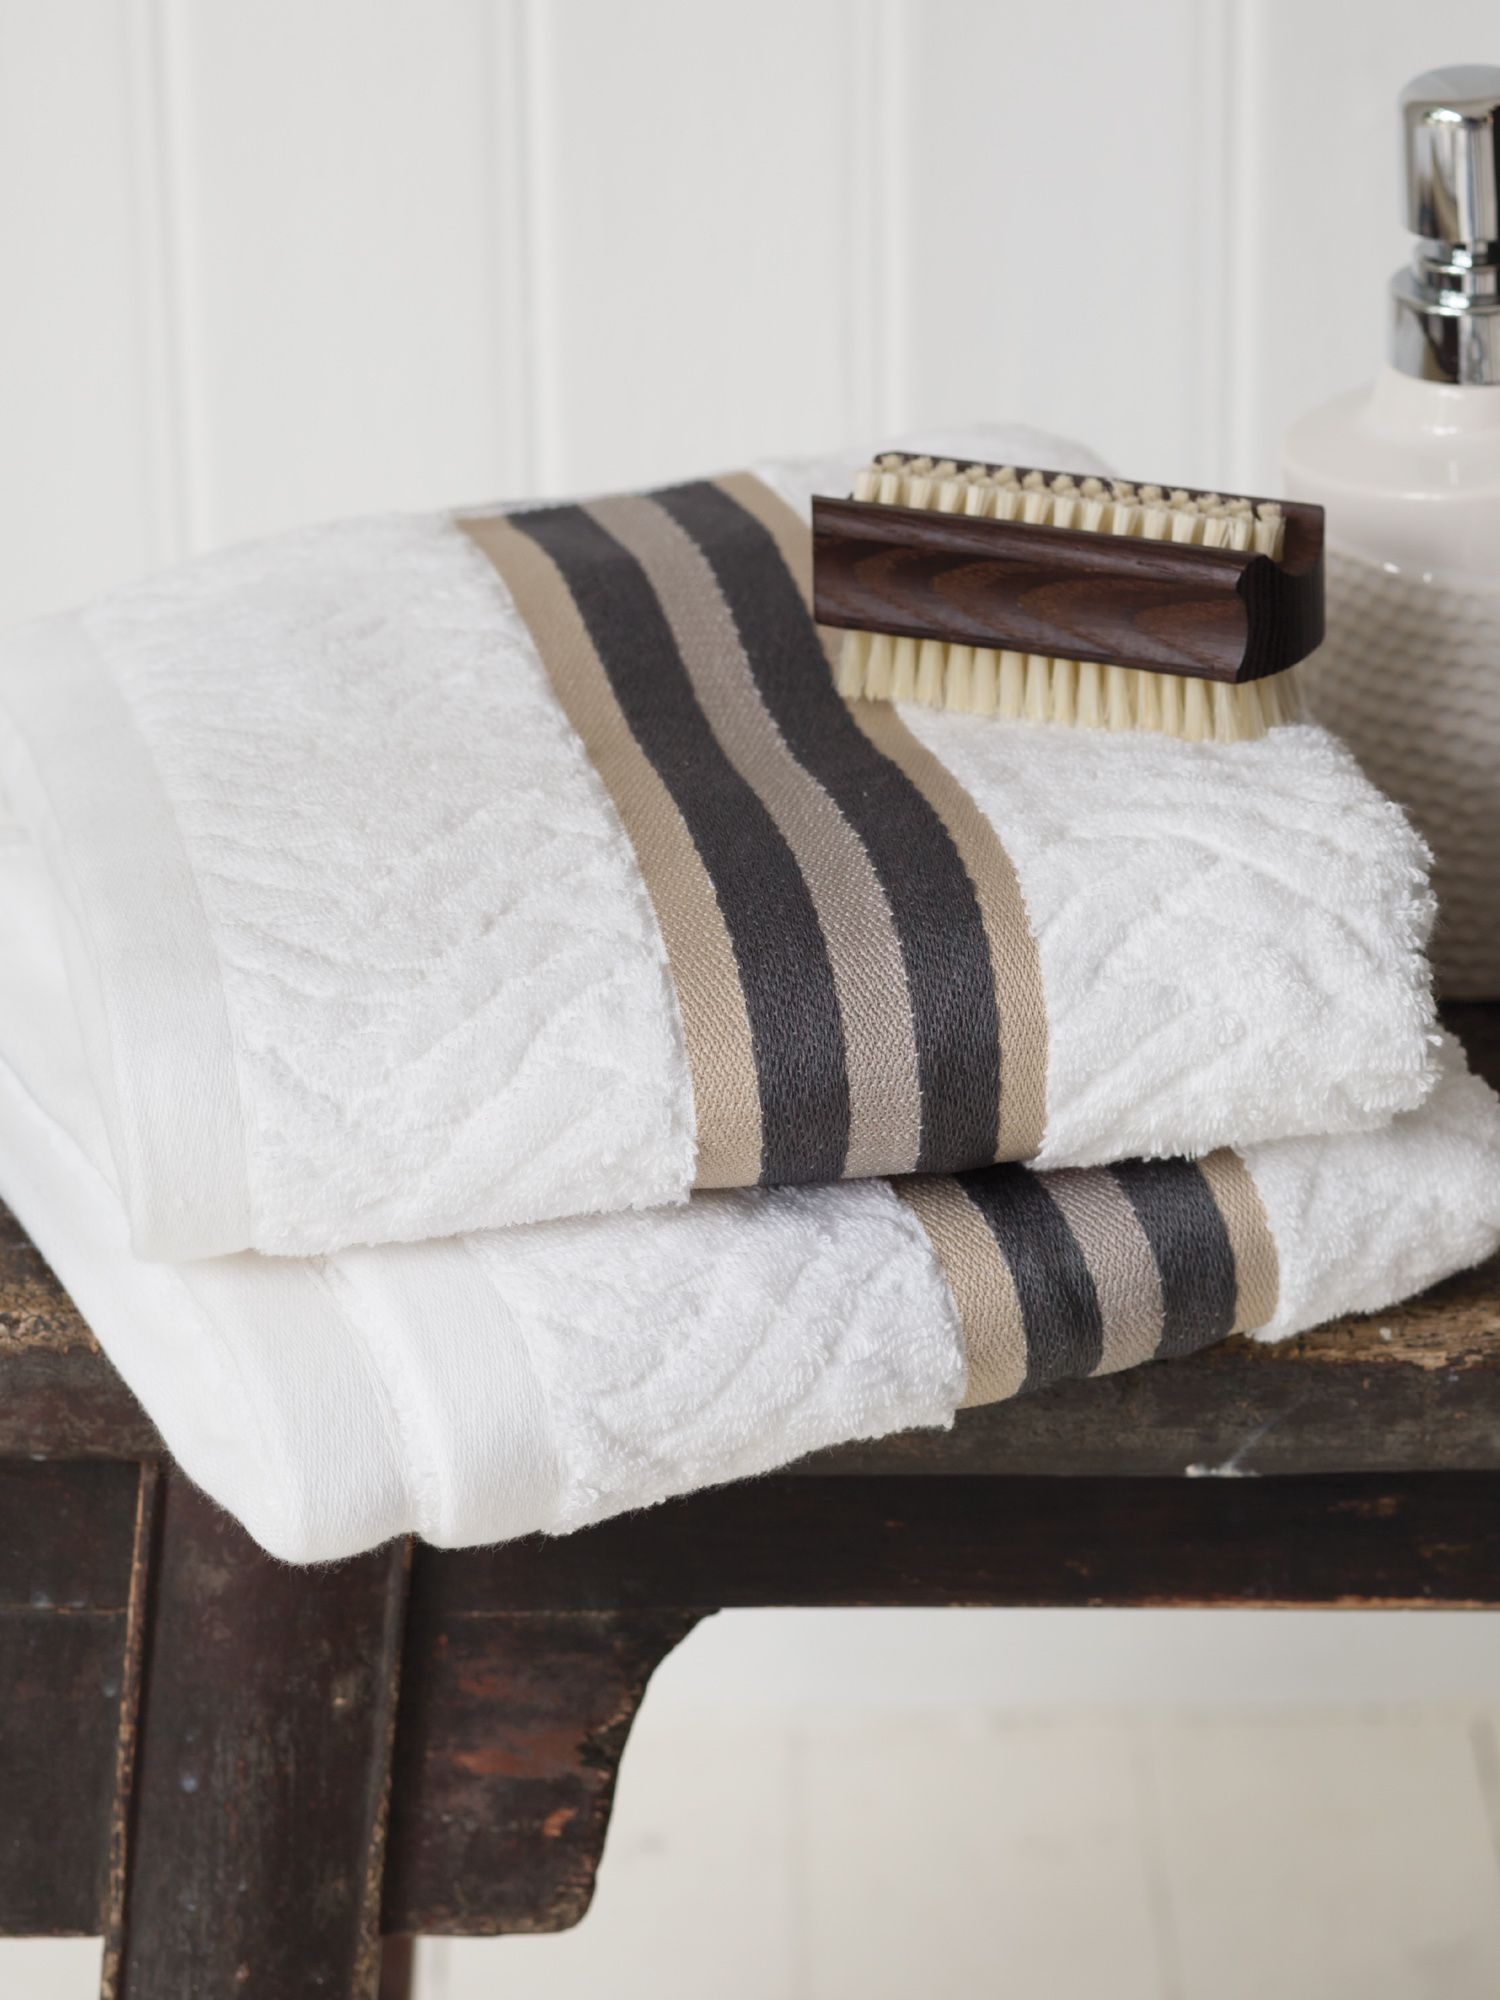 Henley white towels